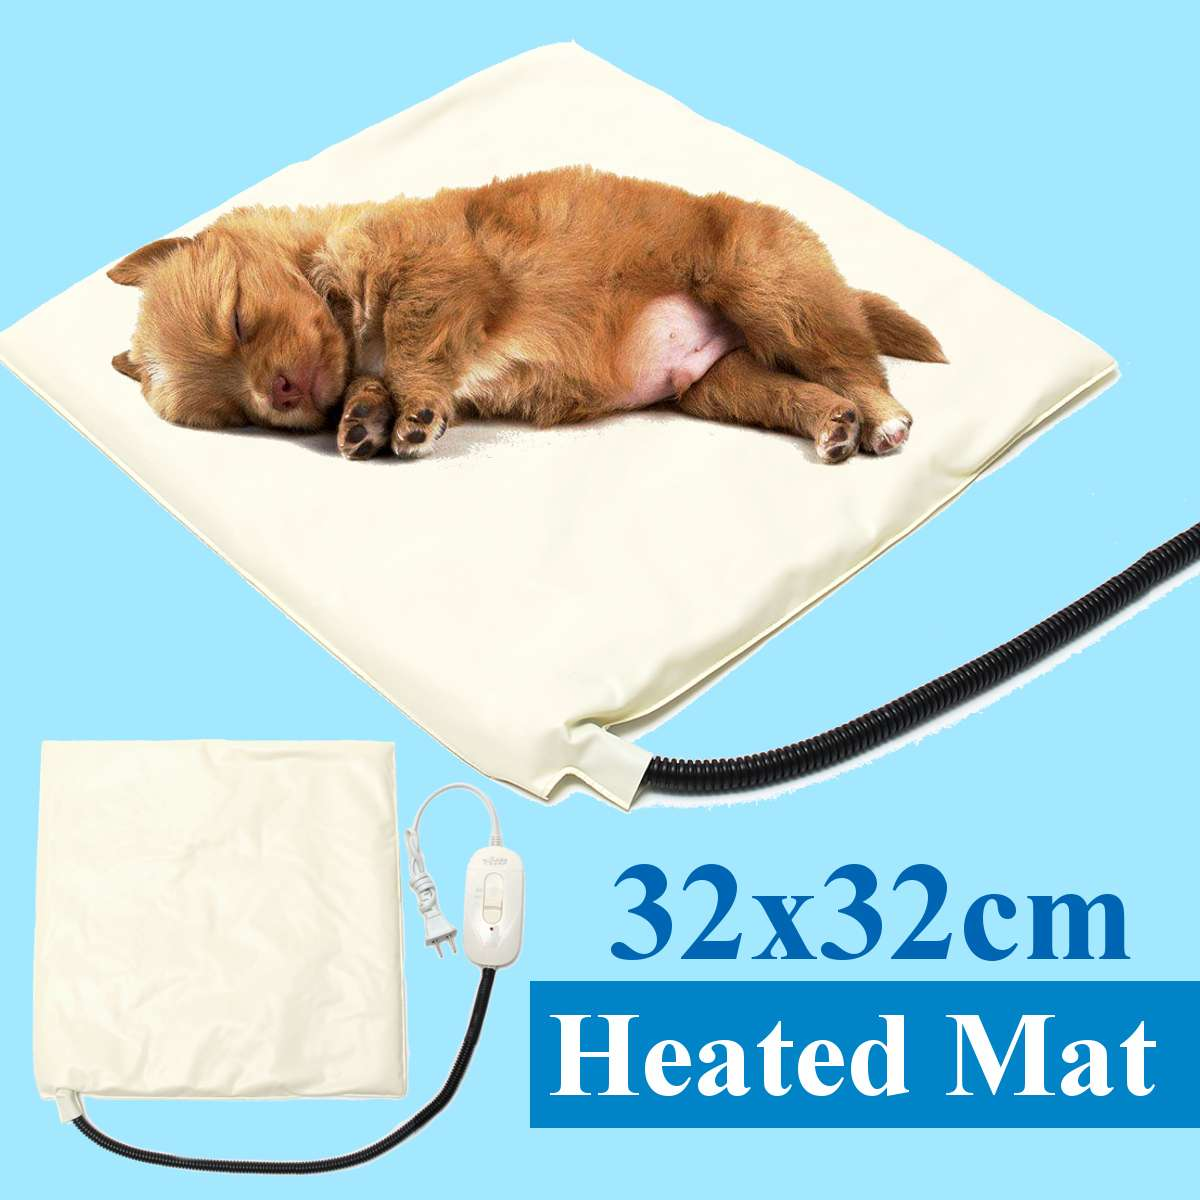 220V Adjustable Pet Electric Heating Pad Blanket For Dog Cat Waterproof Heated Mat Anti Scratch Warmer Sleeping Bed For Winter